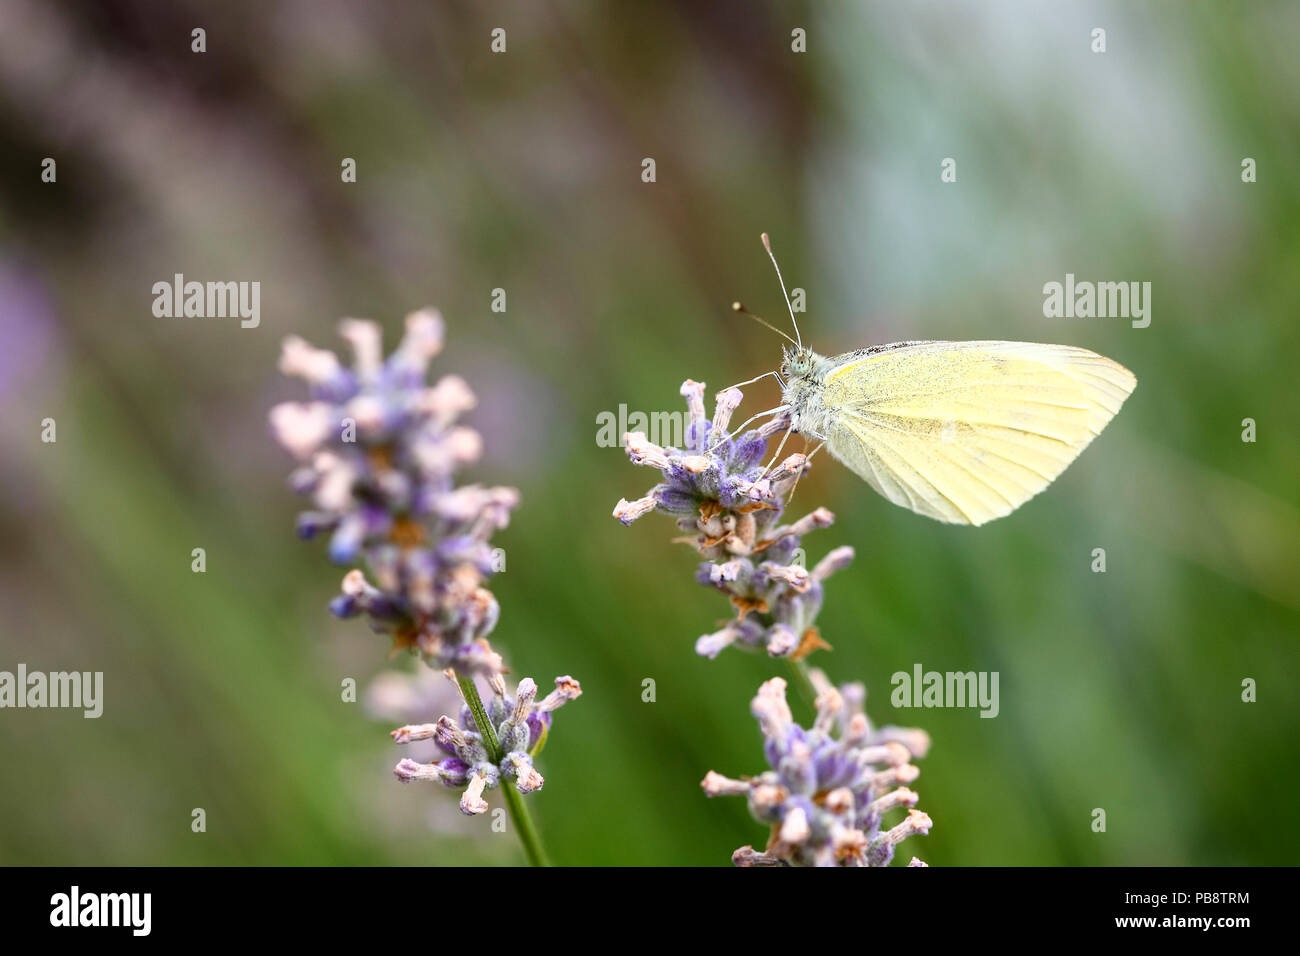 Leeds West Yorkshire UK 27th July 2018. UK Weather: With the forecast for thunder and rain later today in the north of England cabbage white (Pieris rapae)butterflies were making the most of the warm day pollinating lavender (Lavandula) flowers. Credit: Andrew Gardner/Alamy Live News - Stock Image